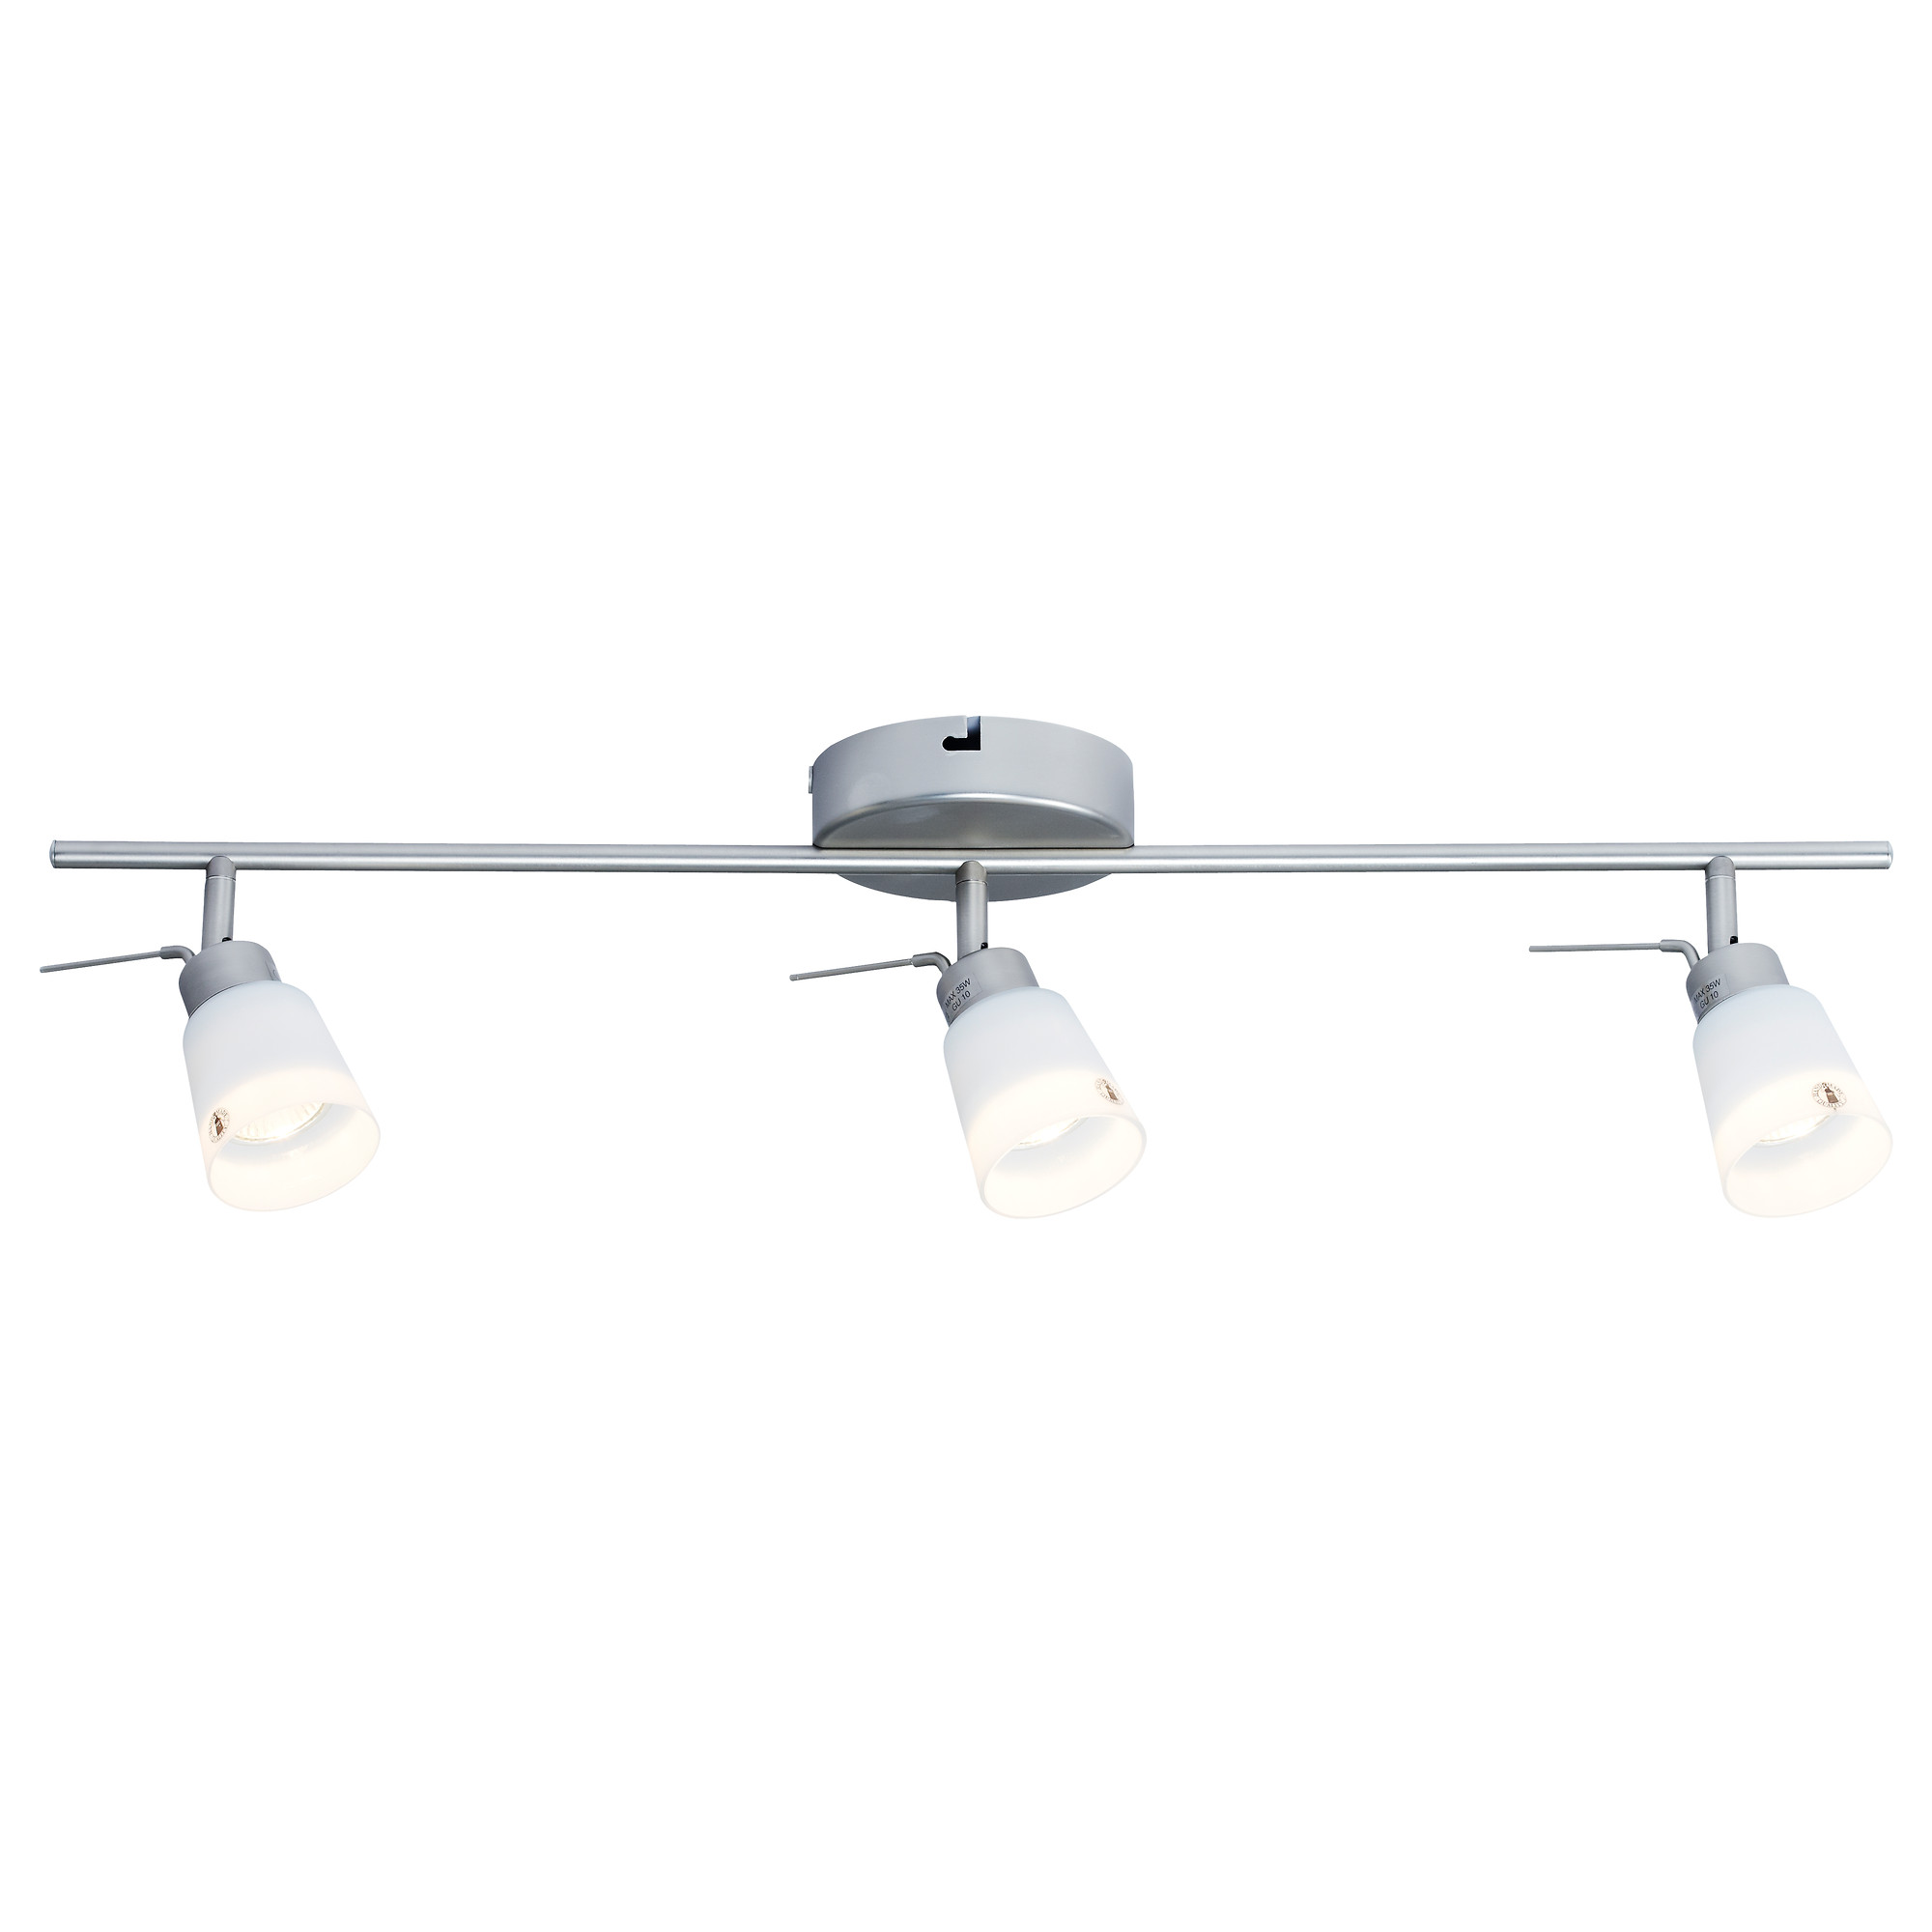 ikea kitchen lighting BASISK Ceiling track 3 spotlights IKEA lighting replacement for kitchen